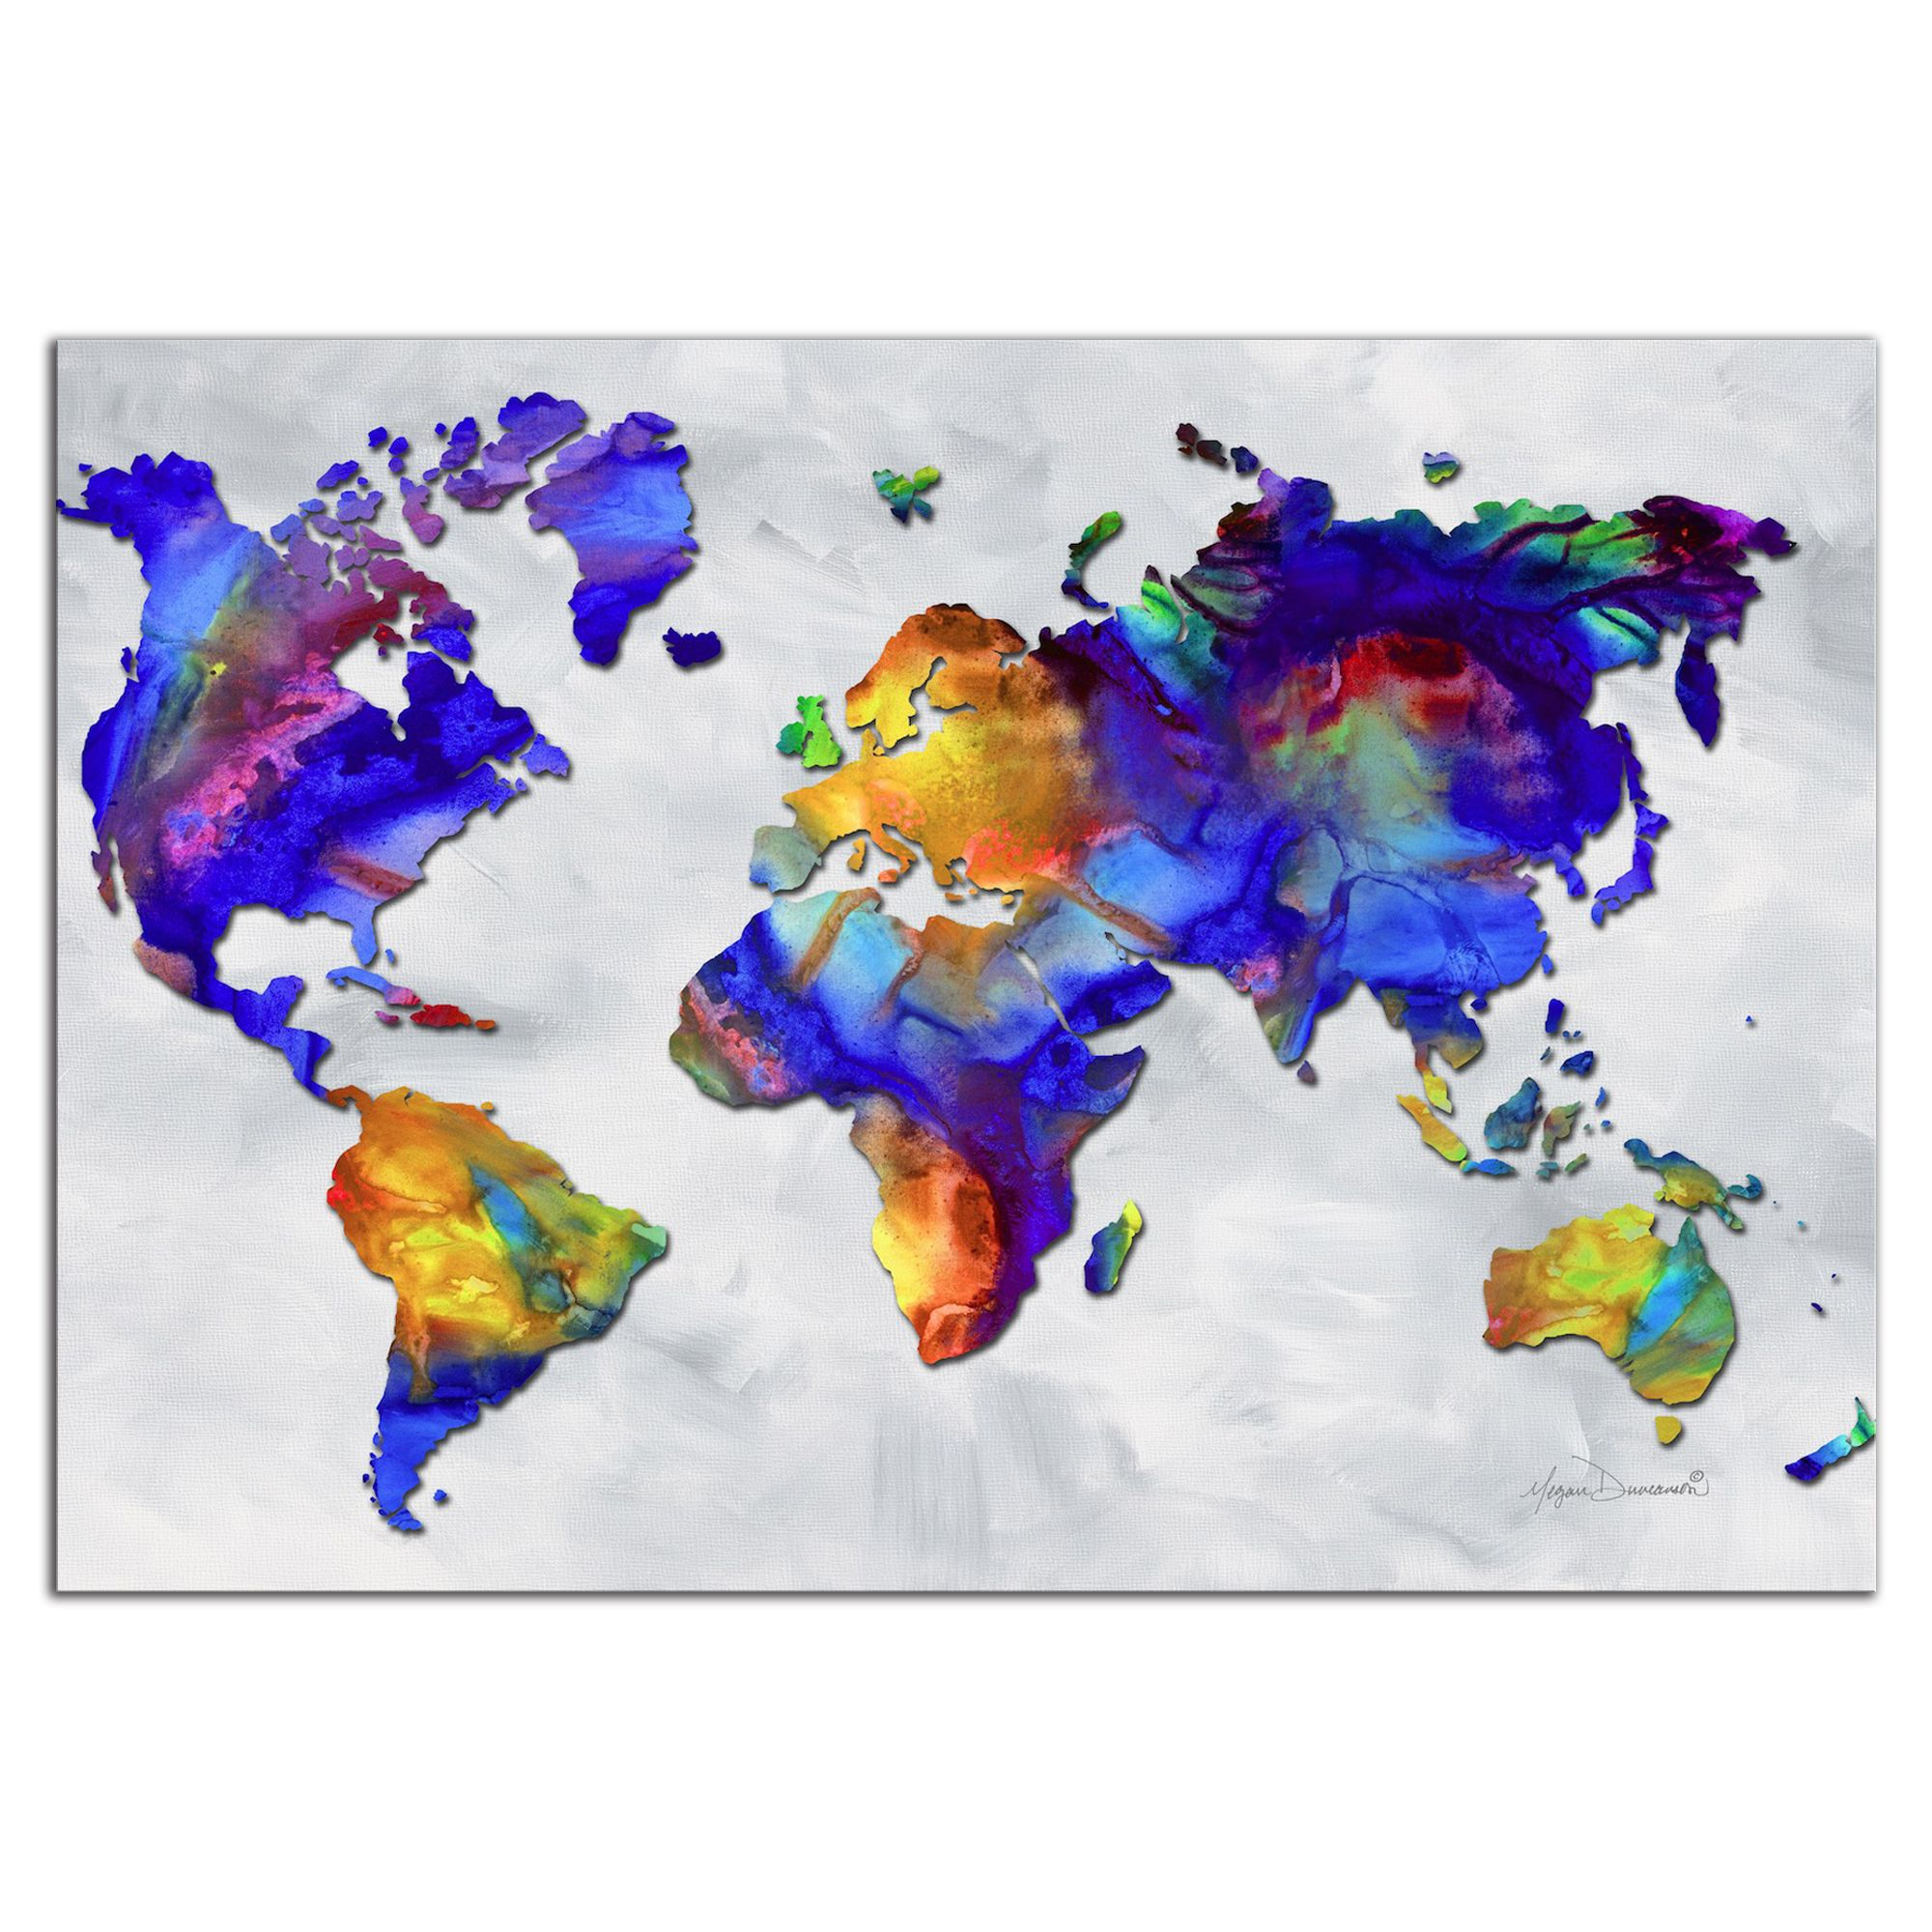 Colorful world map art beauty of color rainbow map artwork paintings for sale colorful world map art beauty of color rainbow map artwork abstract earth continents modern metal painting giclee by megan gumiabroncs Images